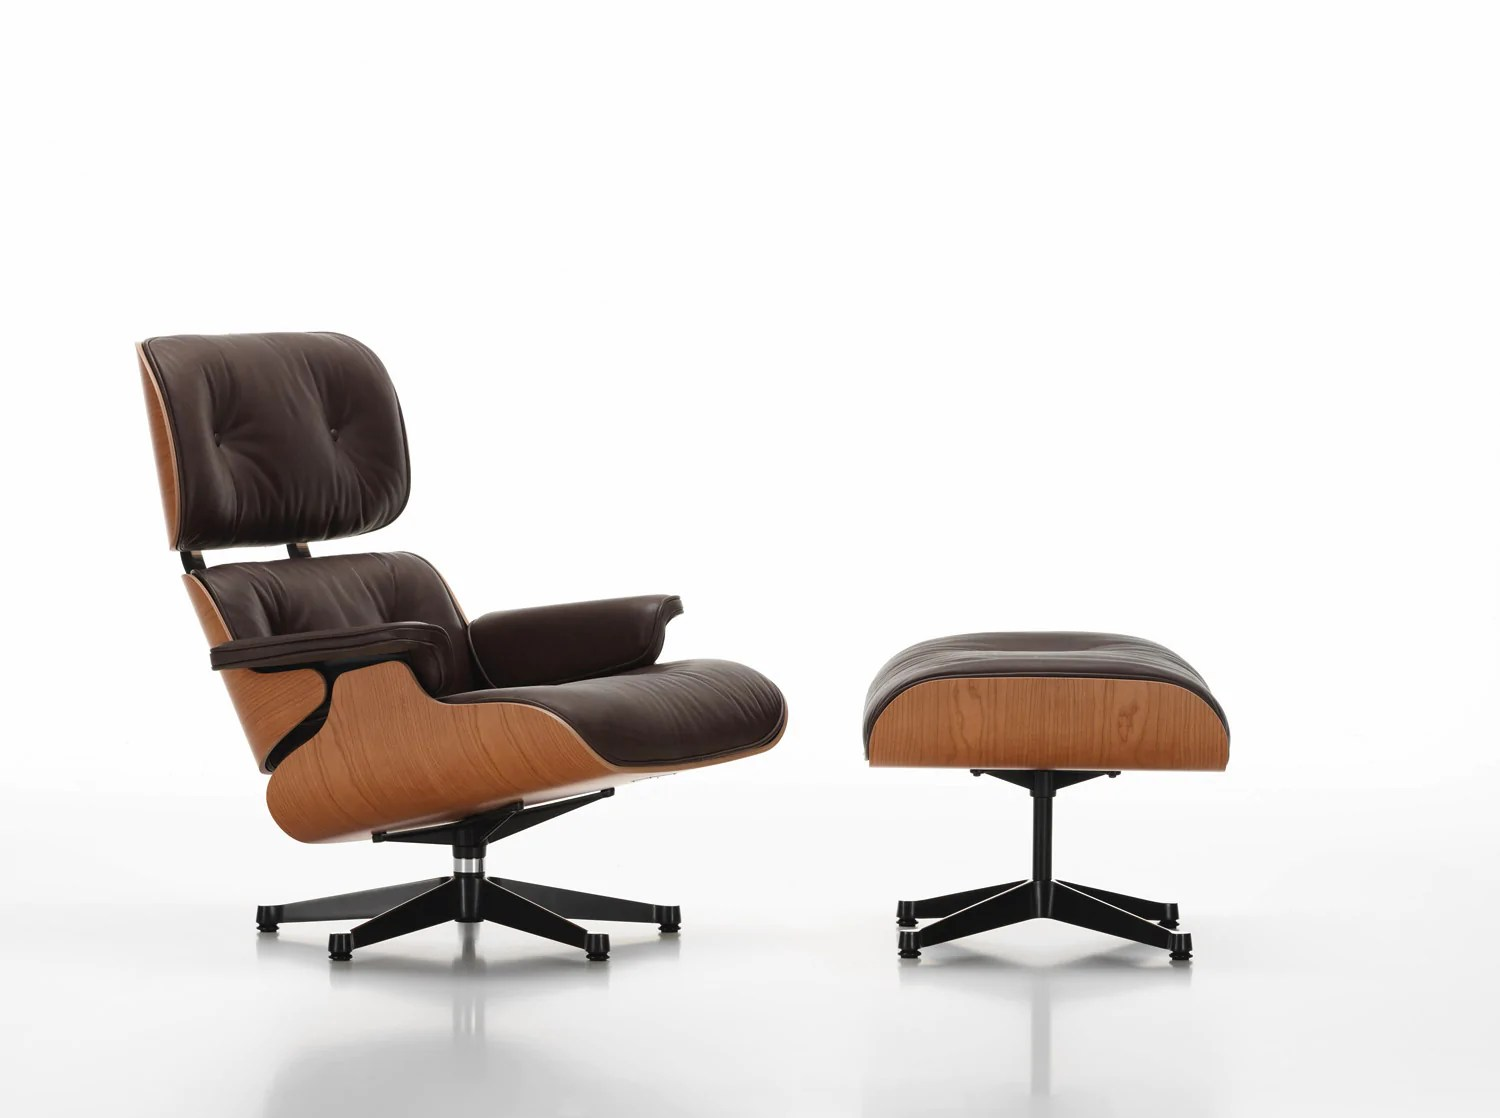 Chair Eames Eames Lounge Chair - American Cherry - Couch Potato Company